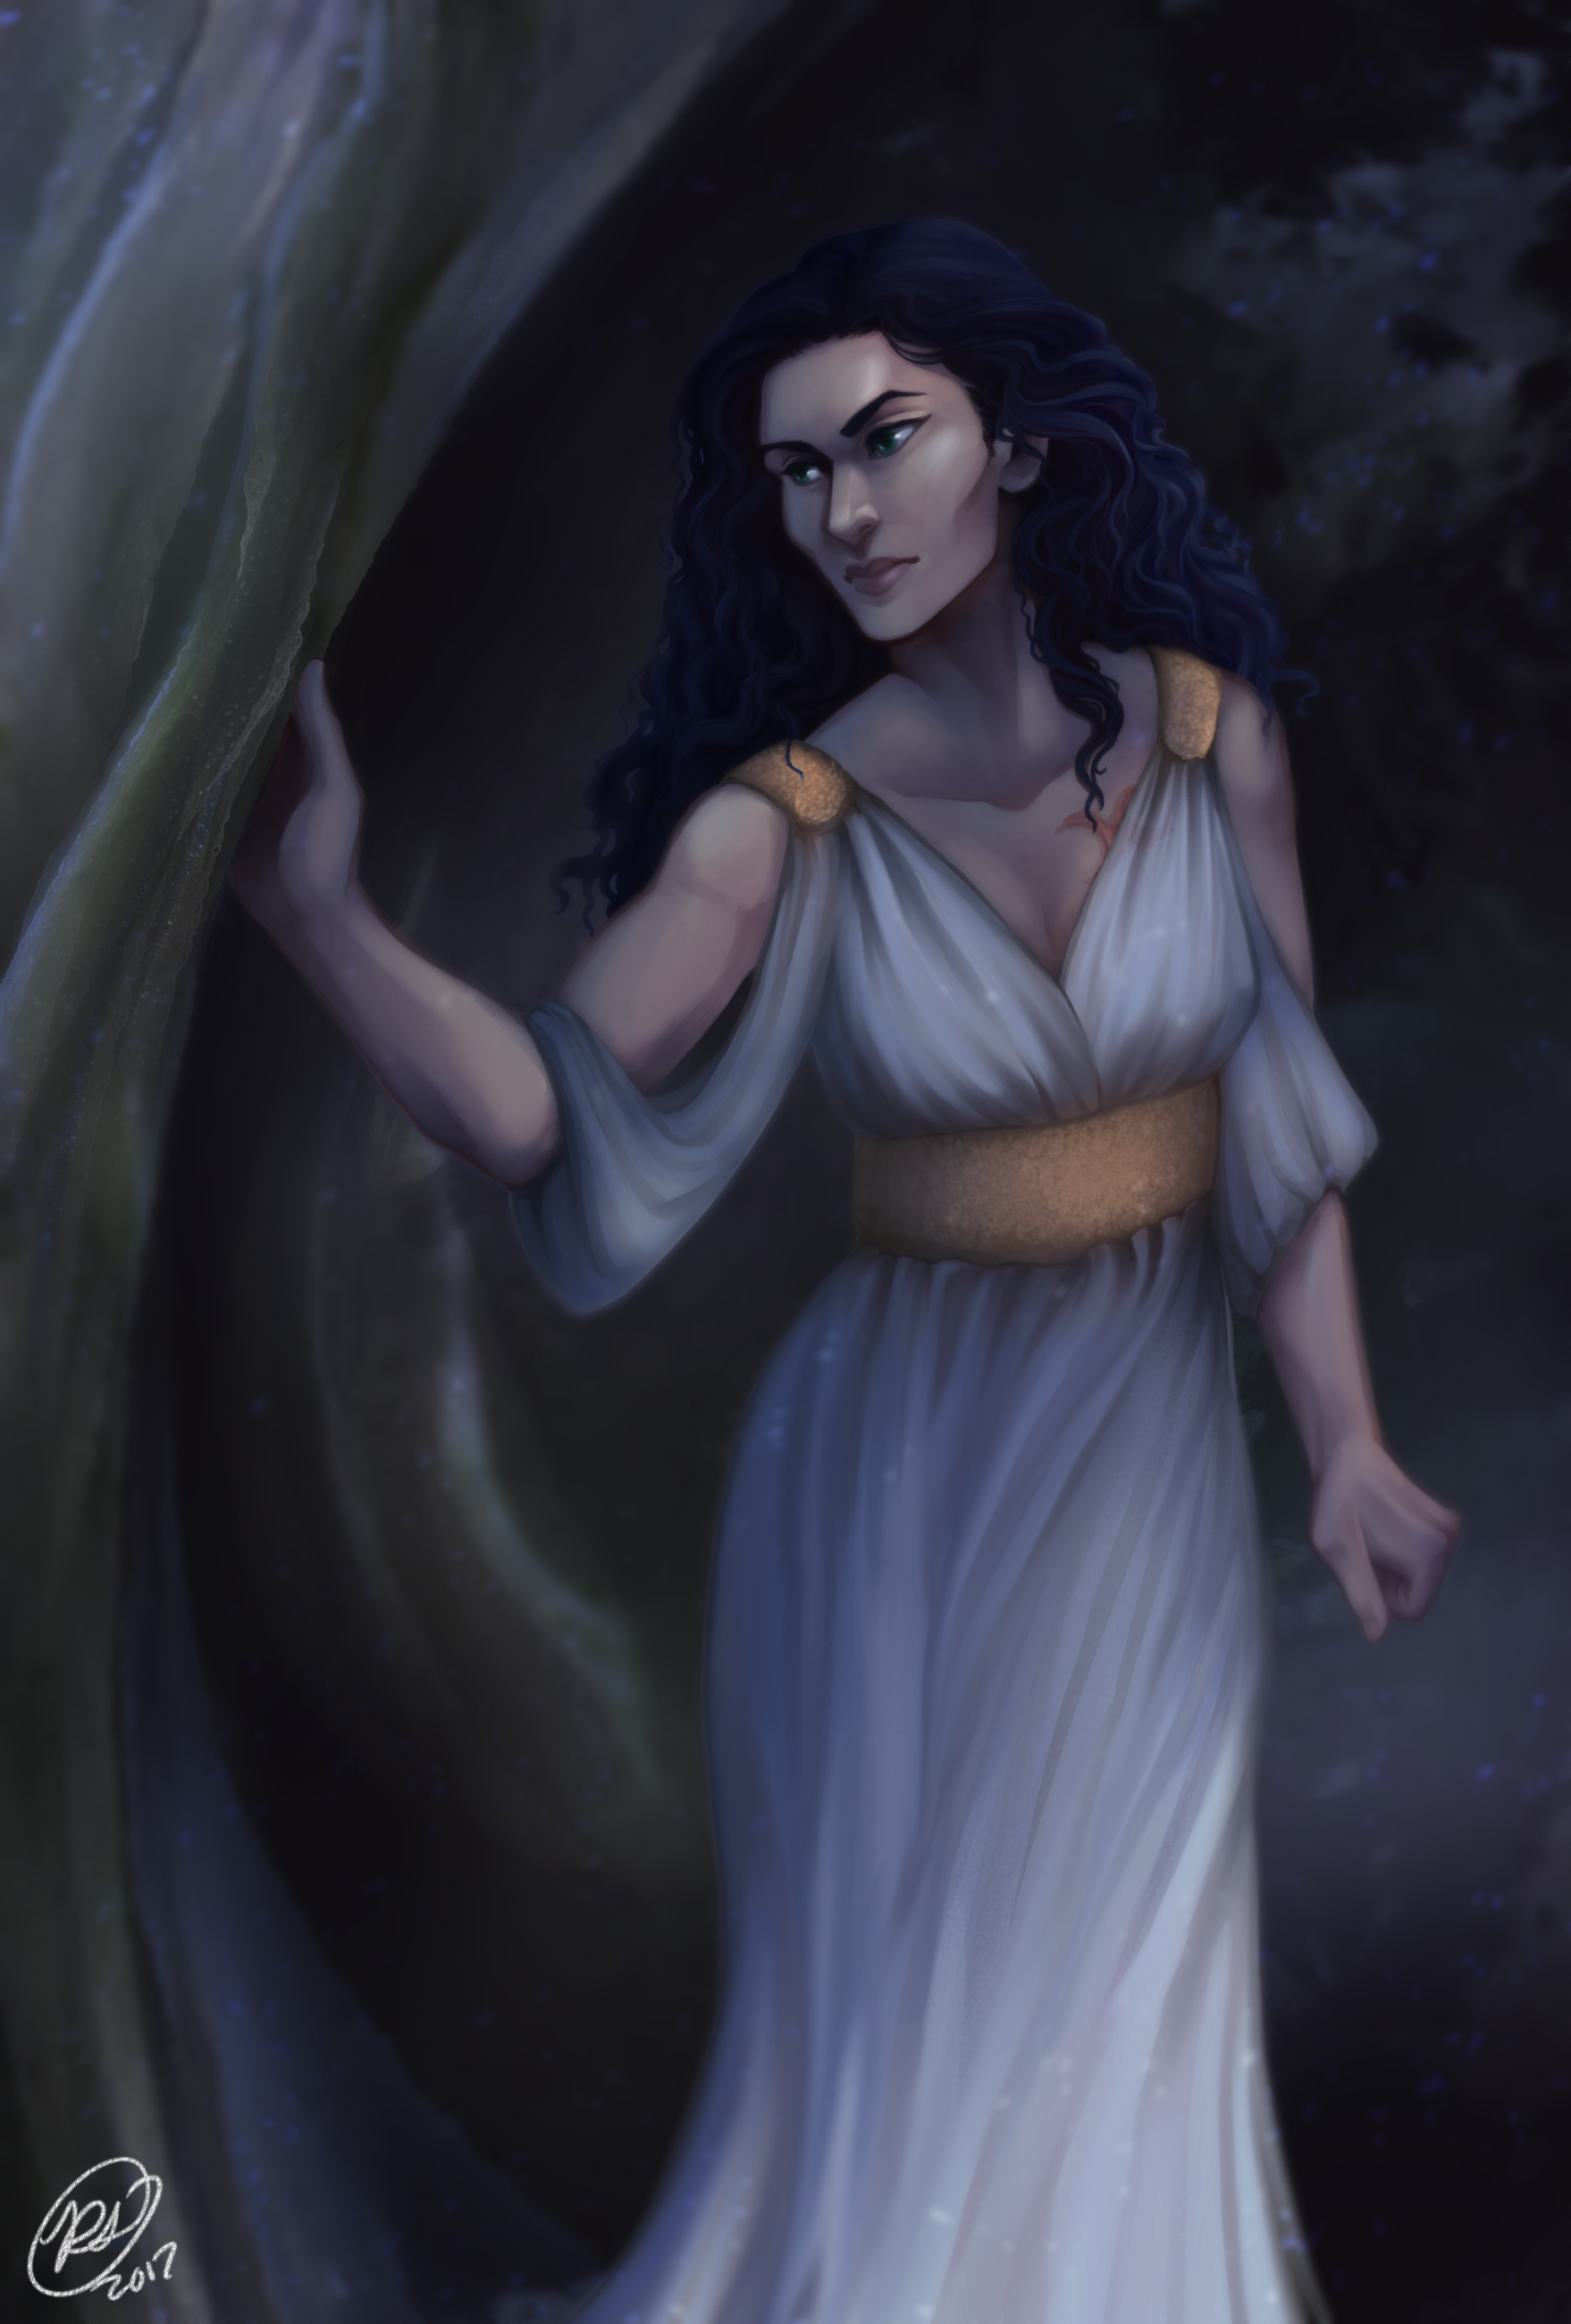 Kyreen_Book_3_Elf_Outfit_finished.jpg